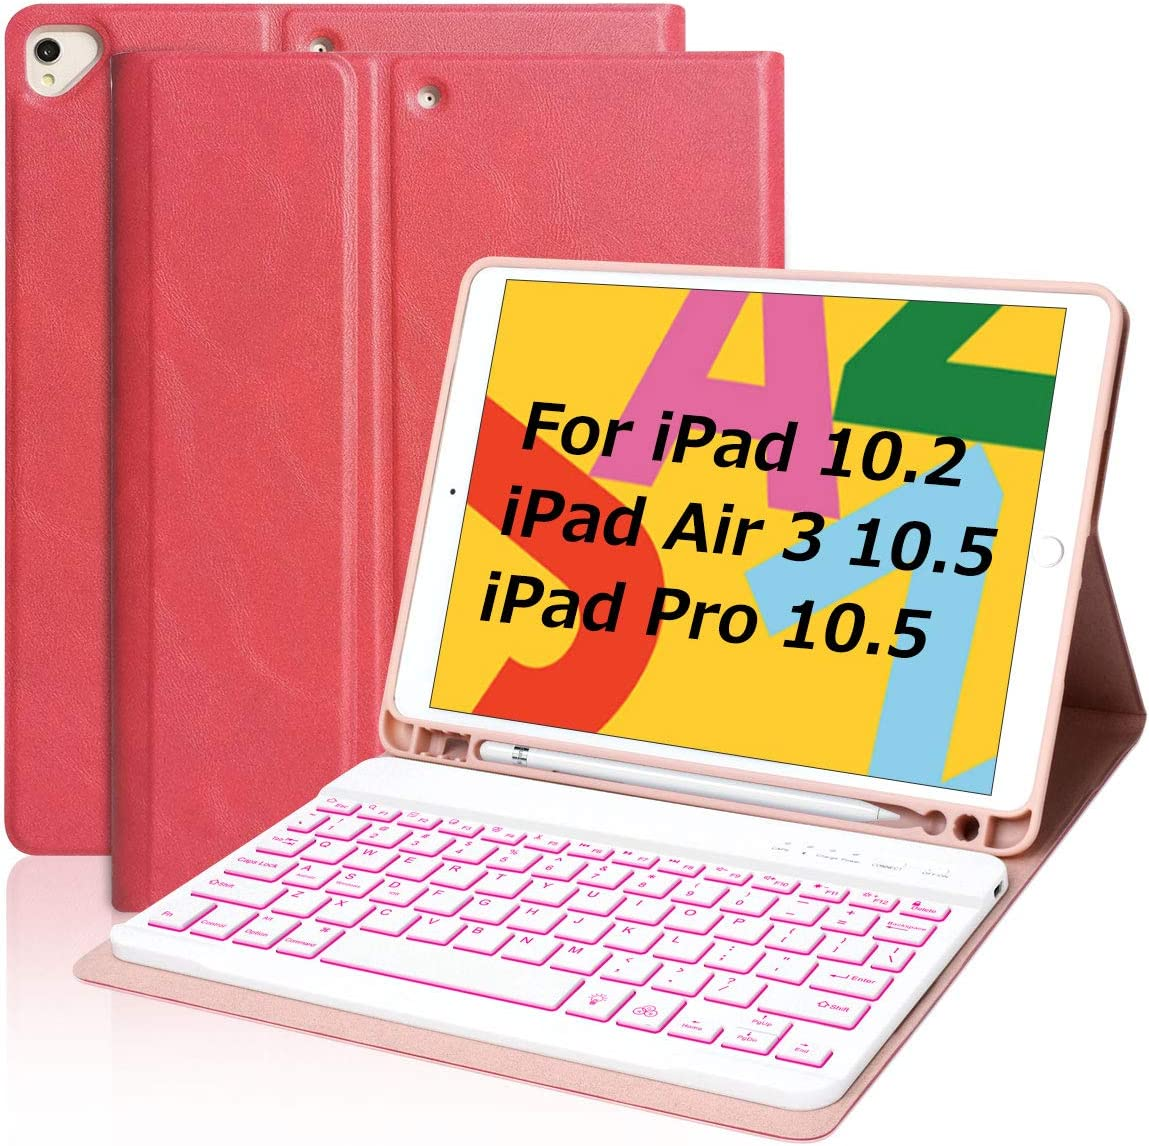 iPad Keyboard Case 10.2 Inch for iPad 8th Generation 2020, Keyboard Case for 10.5 iPad Air 3 Pro 10.5in with Pencil Holder Backlit Bluetooth Keyboard and Cover for iPad 10.2/10.5, Red